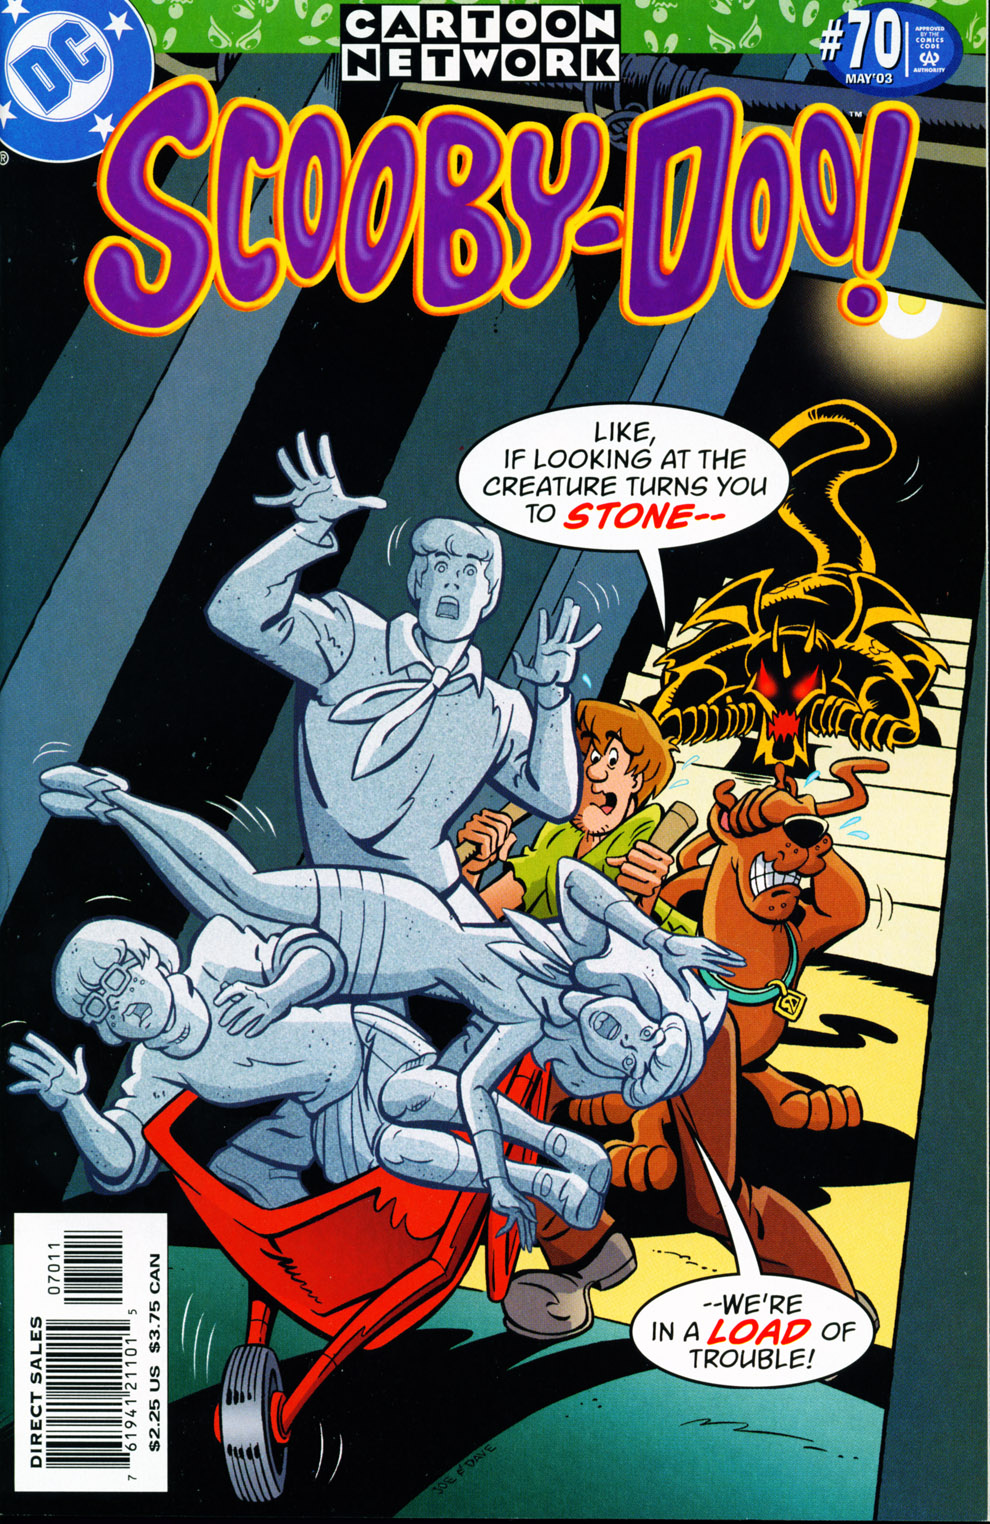 Read online Scooby-Doo (1997) comic -  Issue #70 - 1